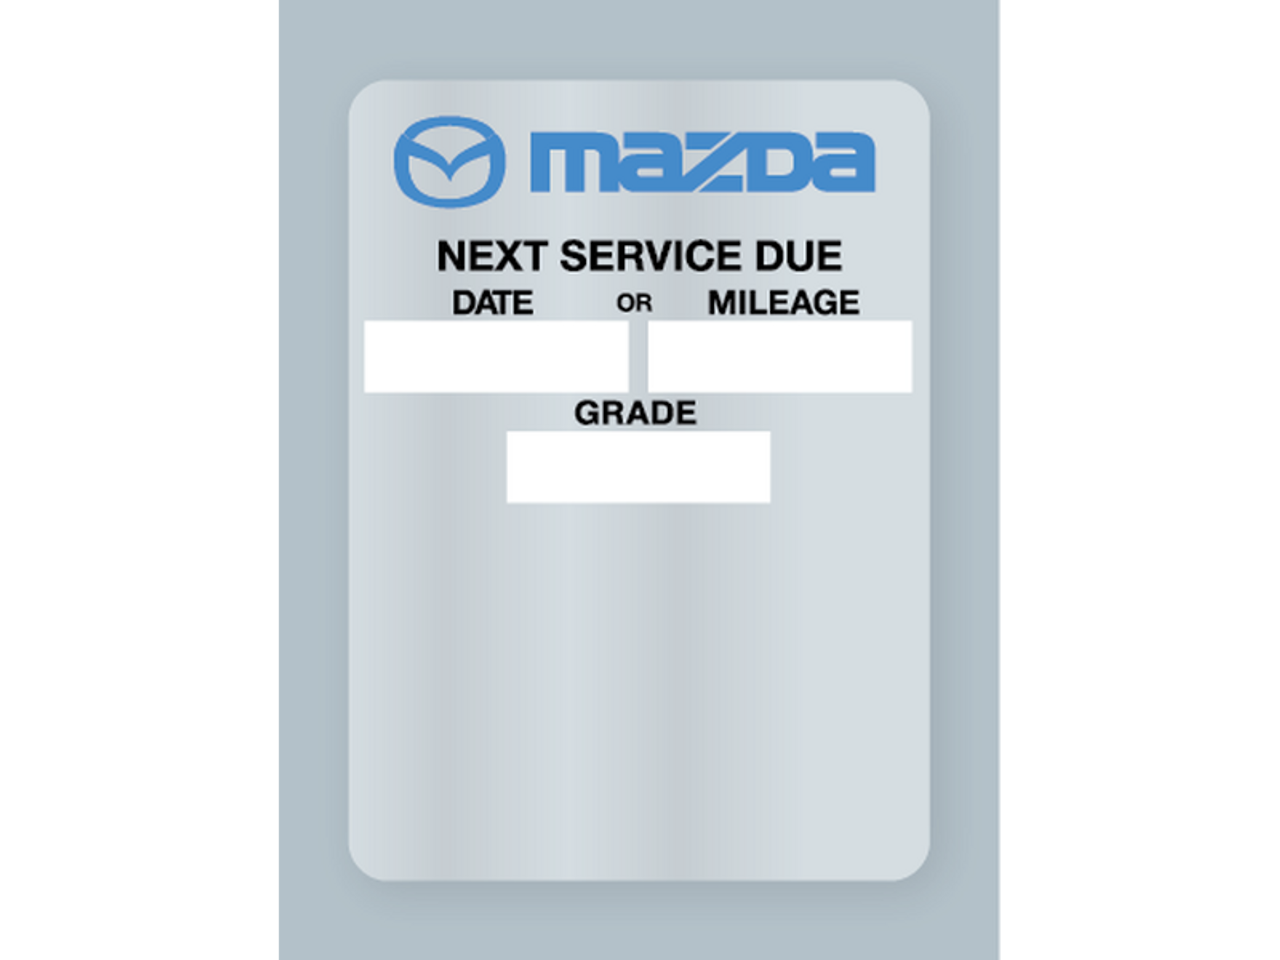 Mazda Oil Change Stickers - Clear Static Cling (Maz-1t)